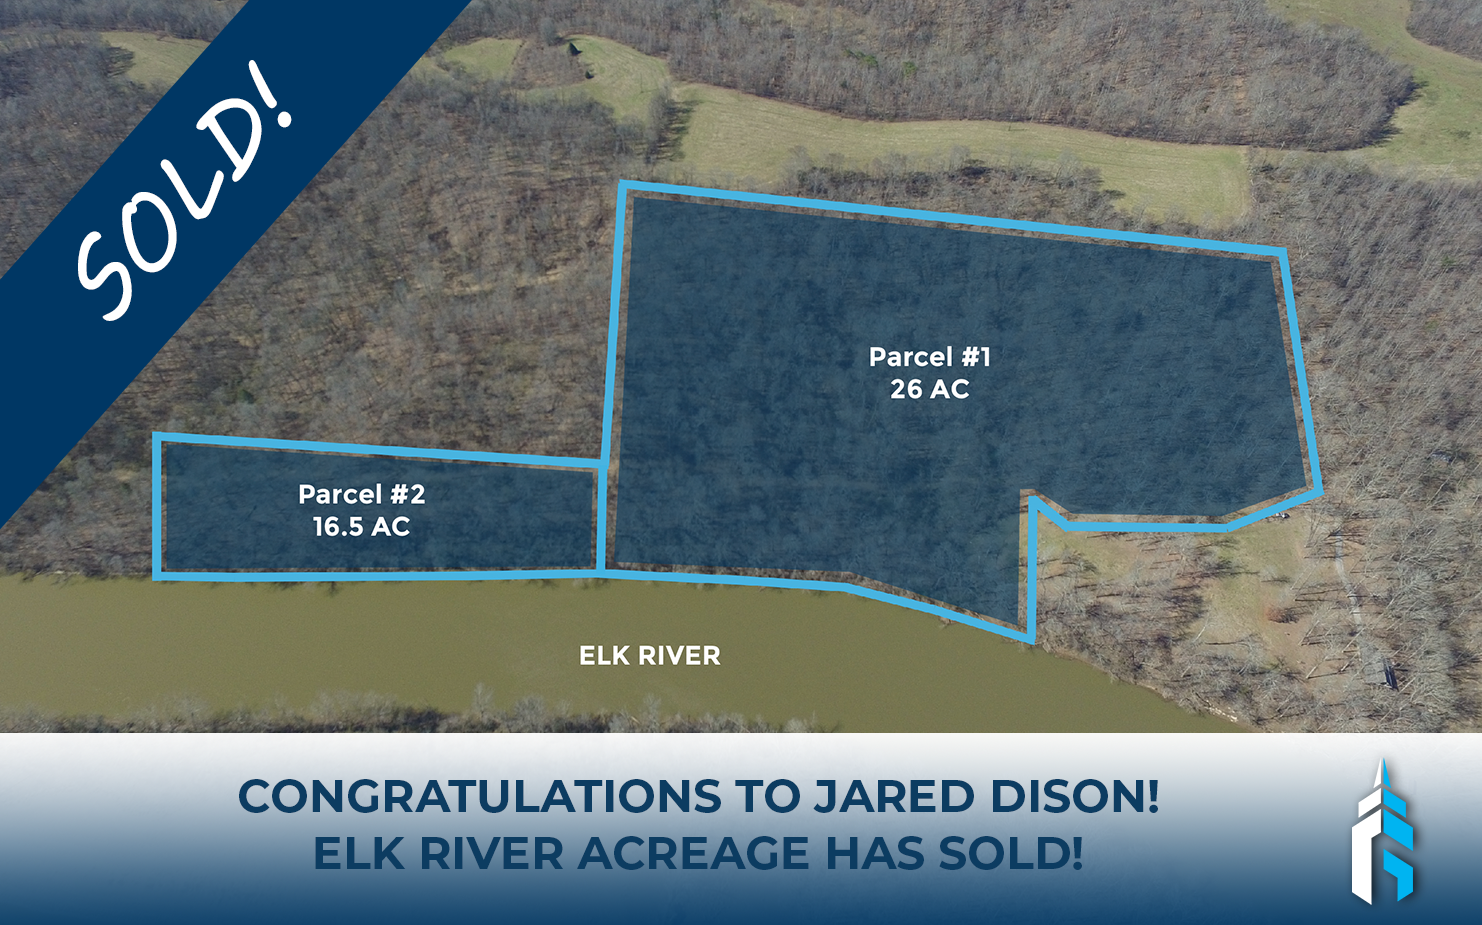 Elk River SOLD